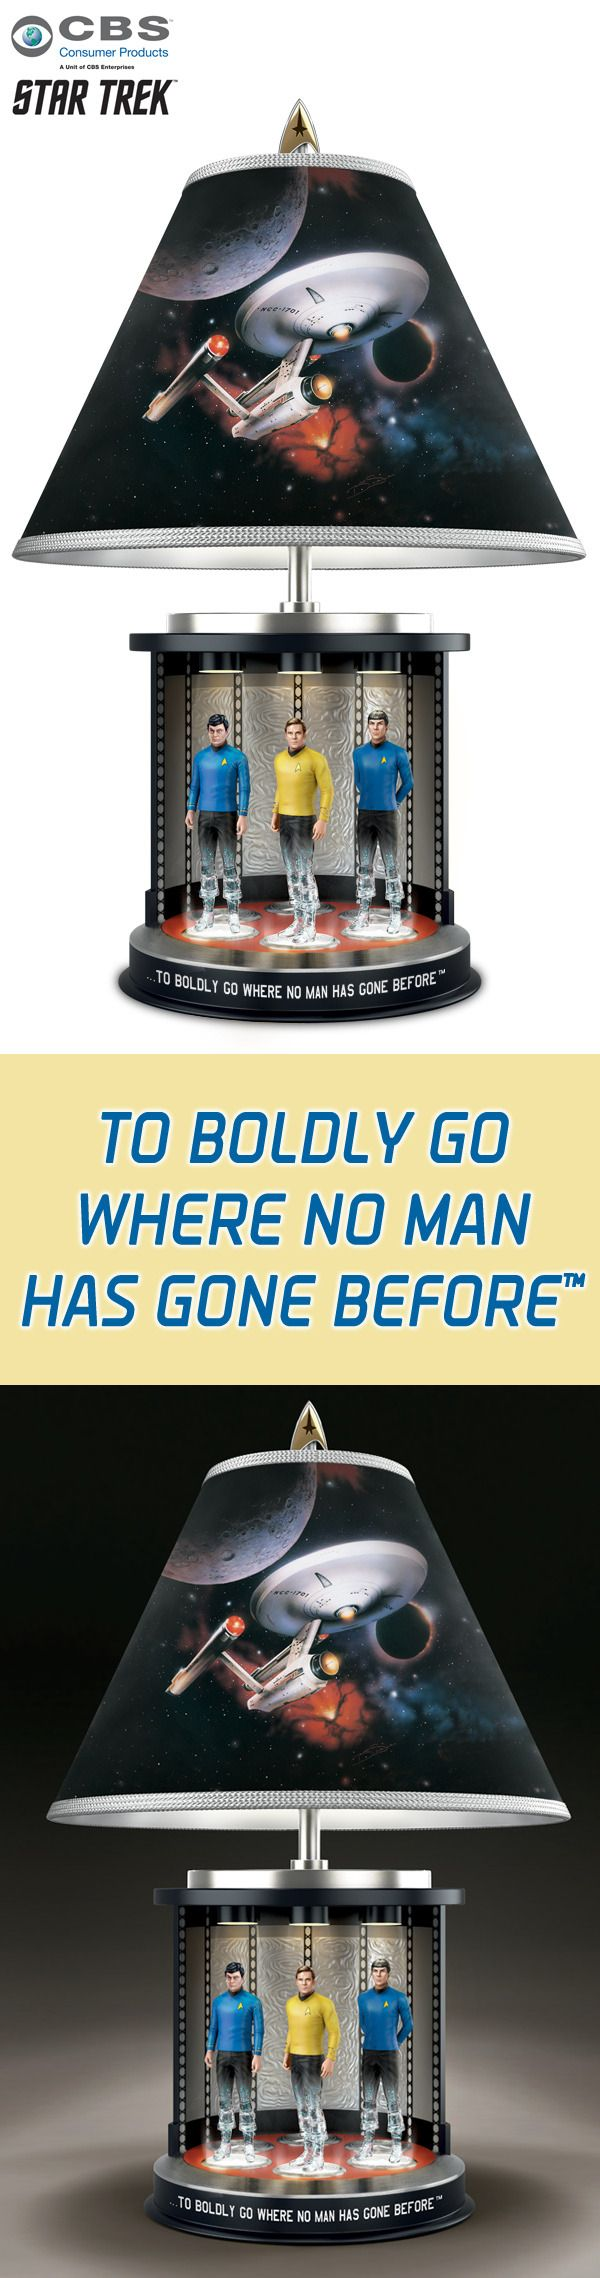 Experience the iconic TV moment where Captain Kirk, Mr. Spock and Dr. McCoy step into the transporter to beam down to the unknown in this limited-edition STAR TREK lamp.